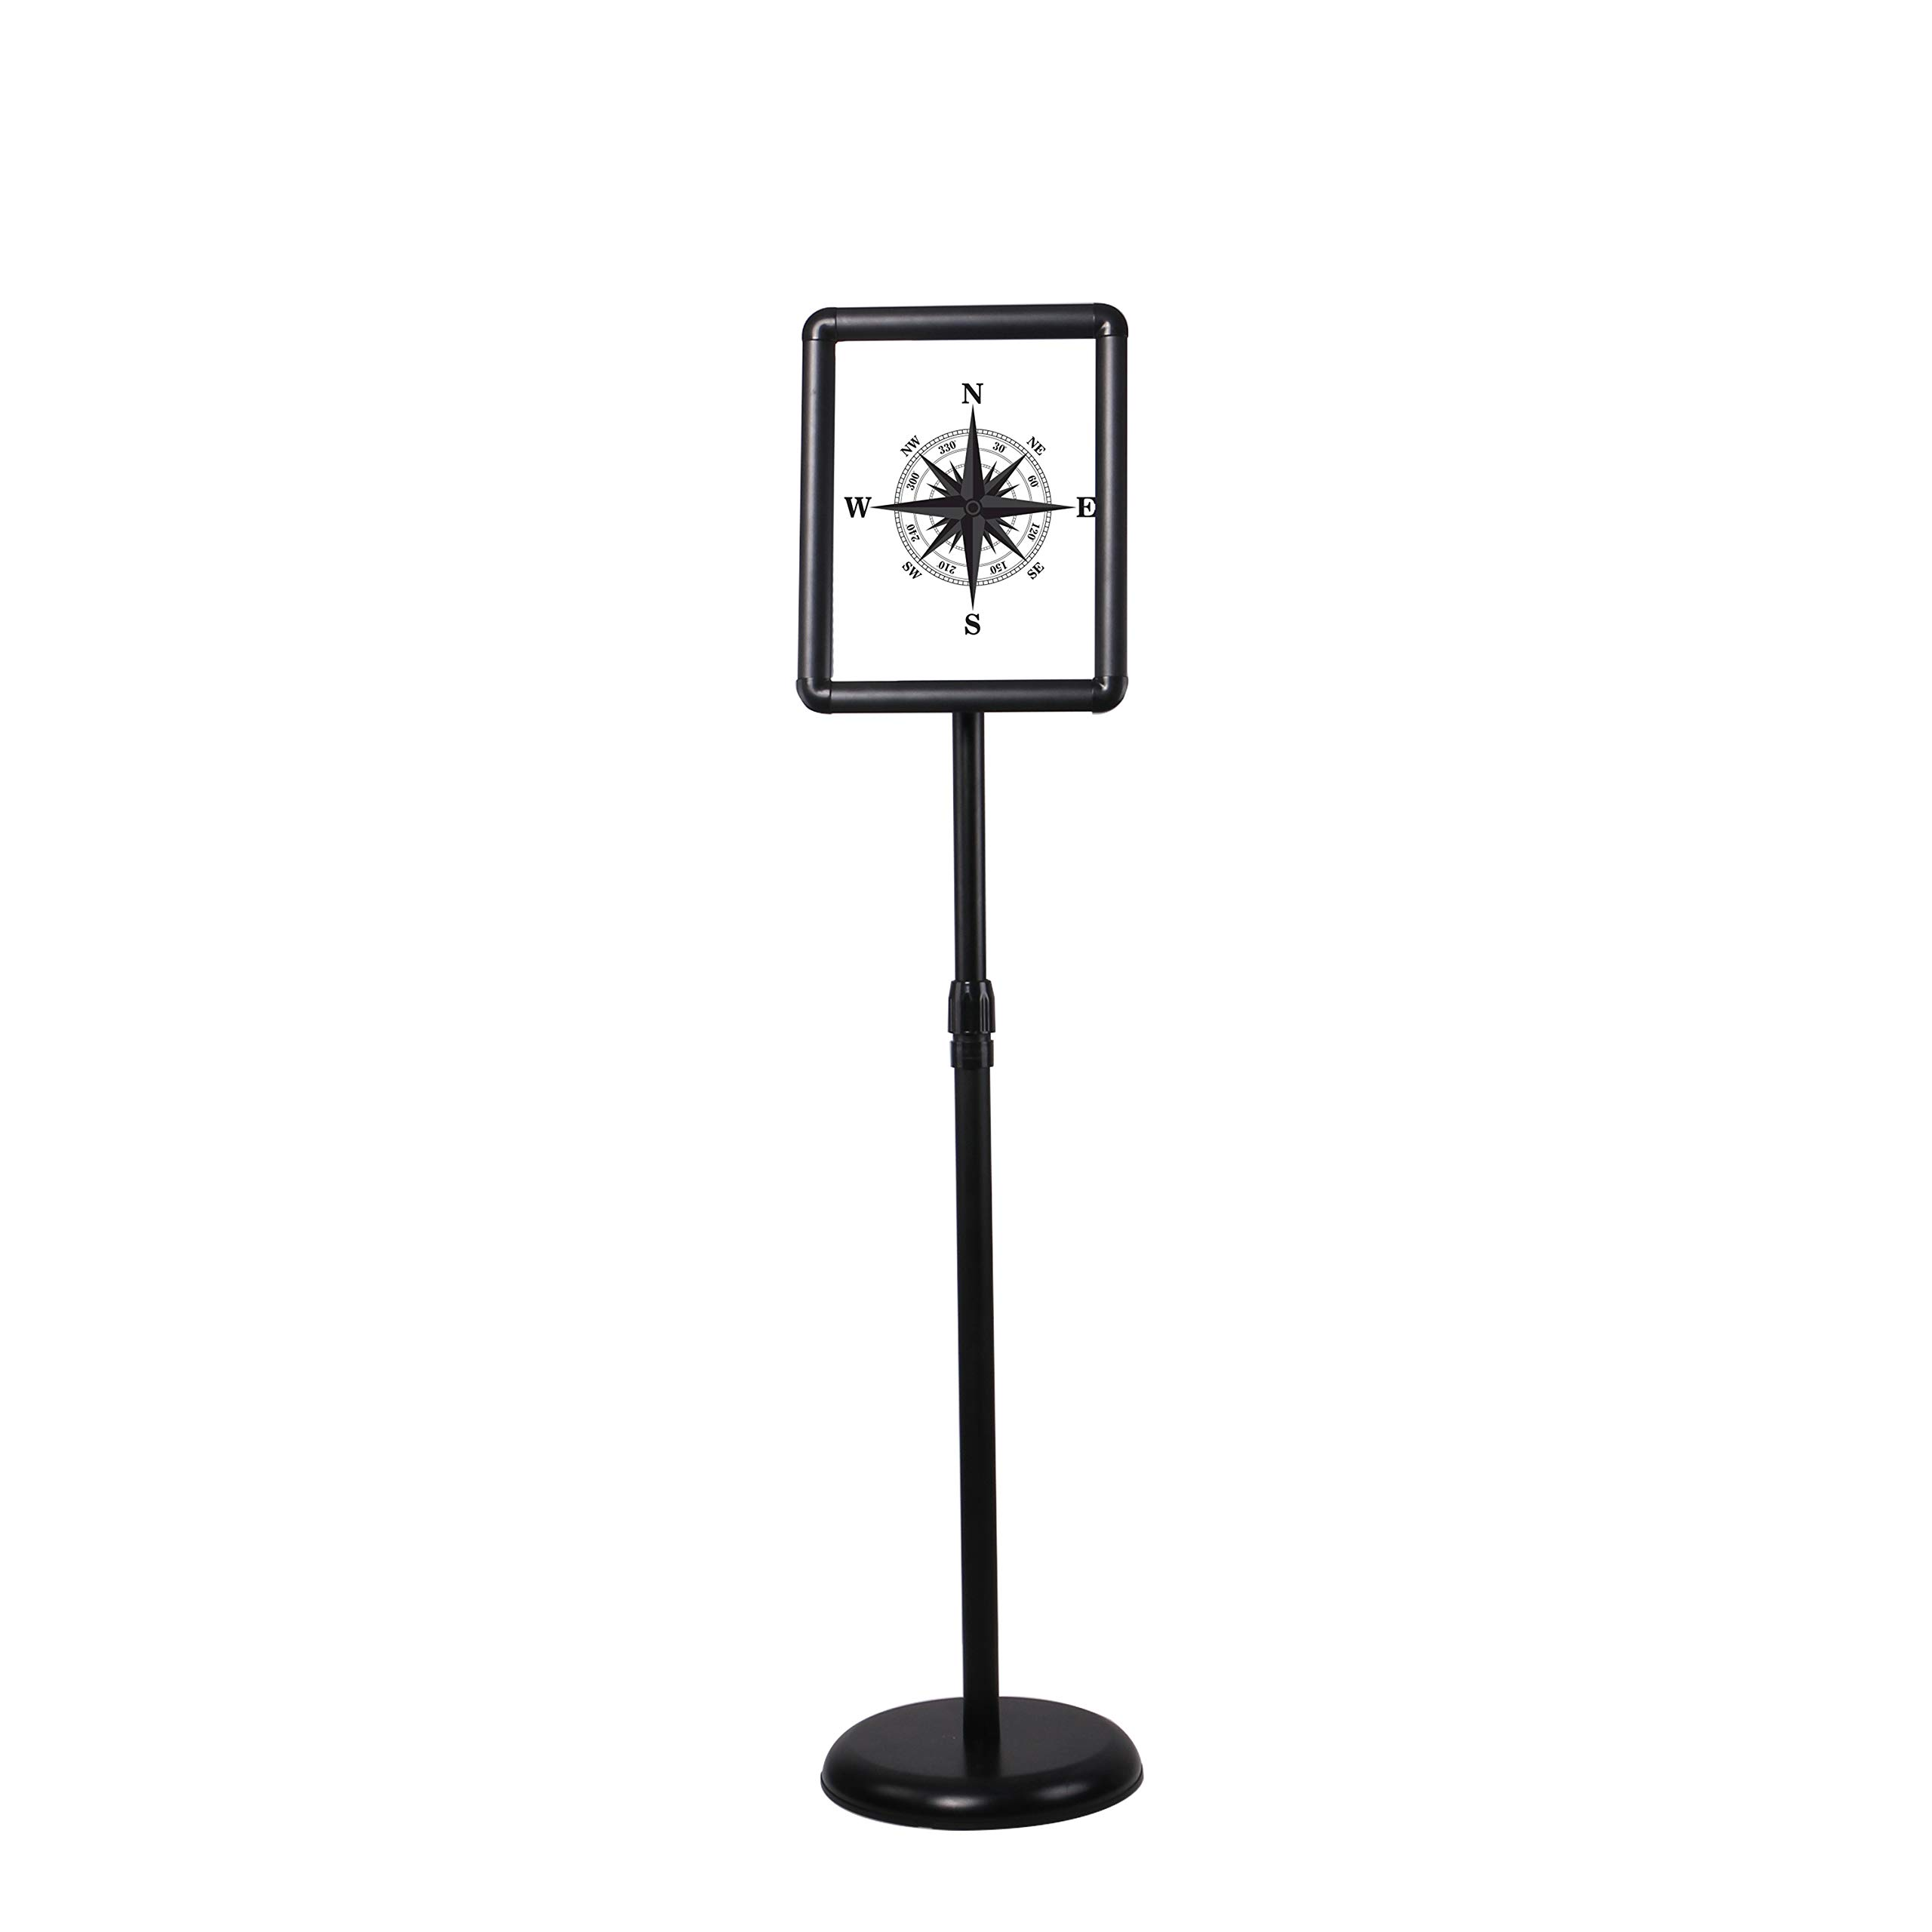 Floor Sign Stand Adjustable Pedestal Sign Holder Stand, Poster Stand Aluminum Snap Open Frame for 8.5X11 Inches with Heavy Round Base, Both Vertical and Horizontal Sign Displayed (Black) by SCZS